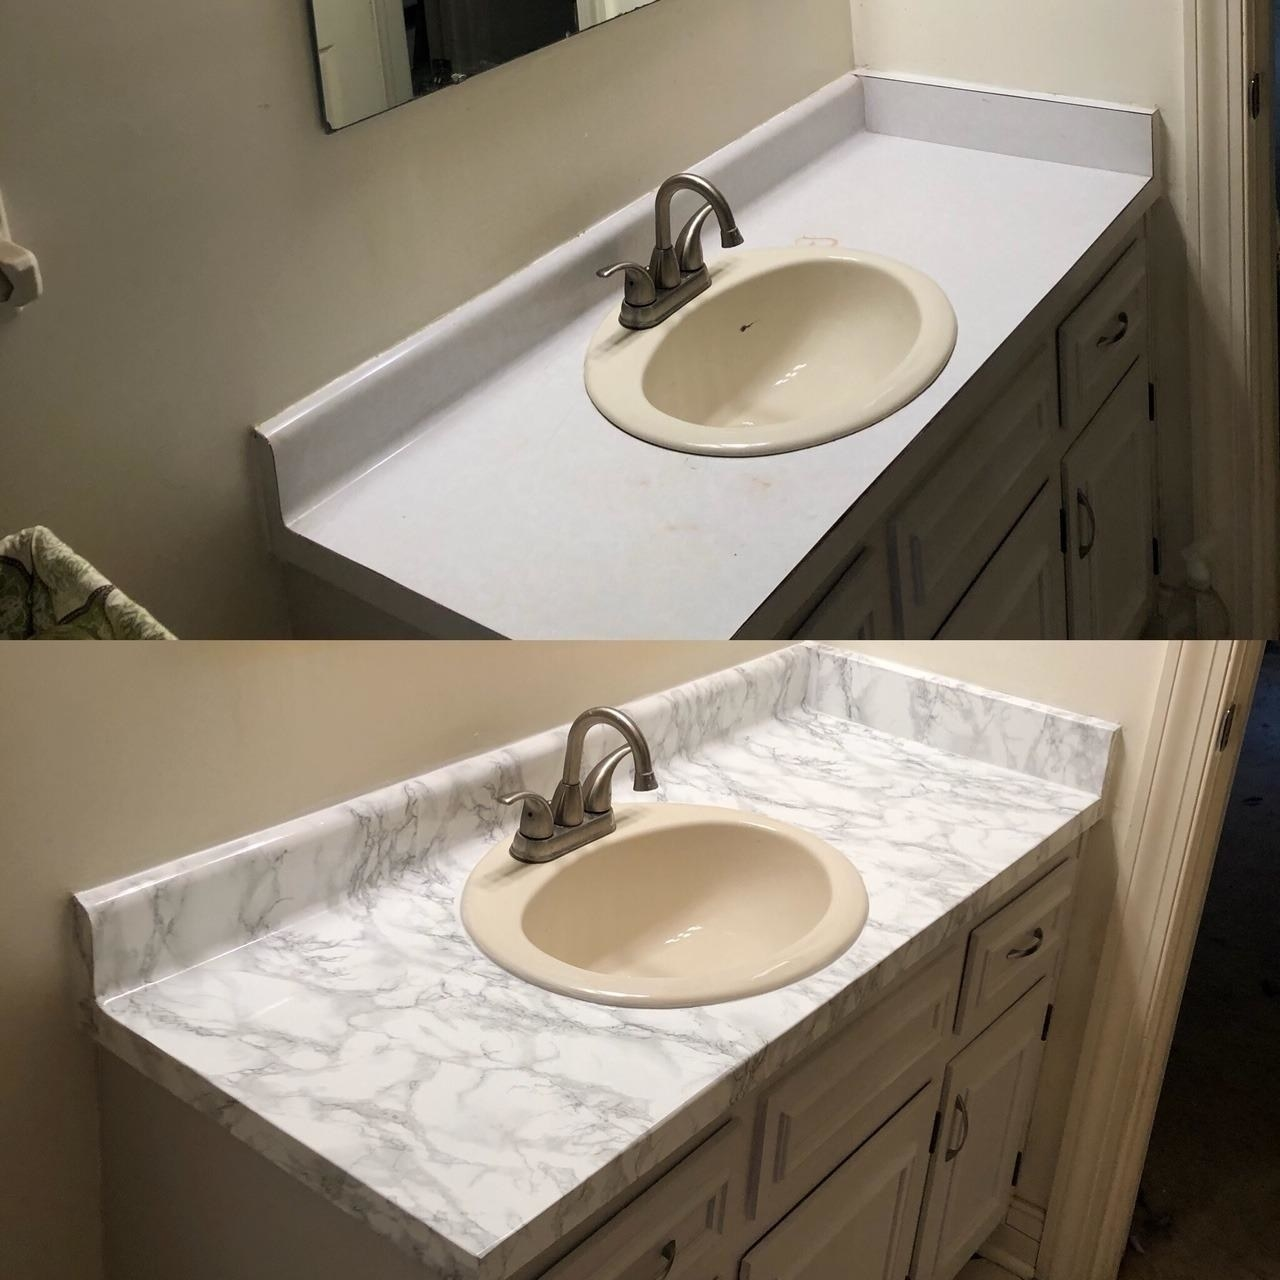 on top a reviewer's plain bathroom counter, on the bottom the same counter covered in marble film